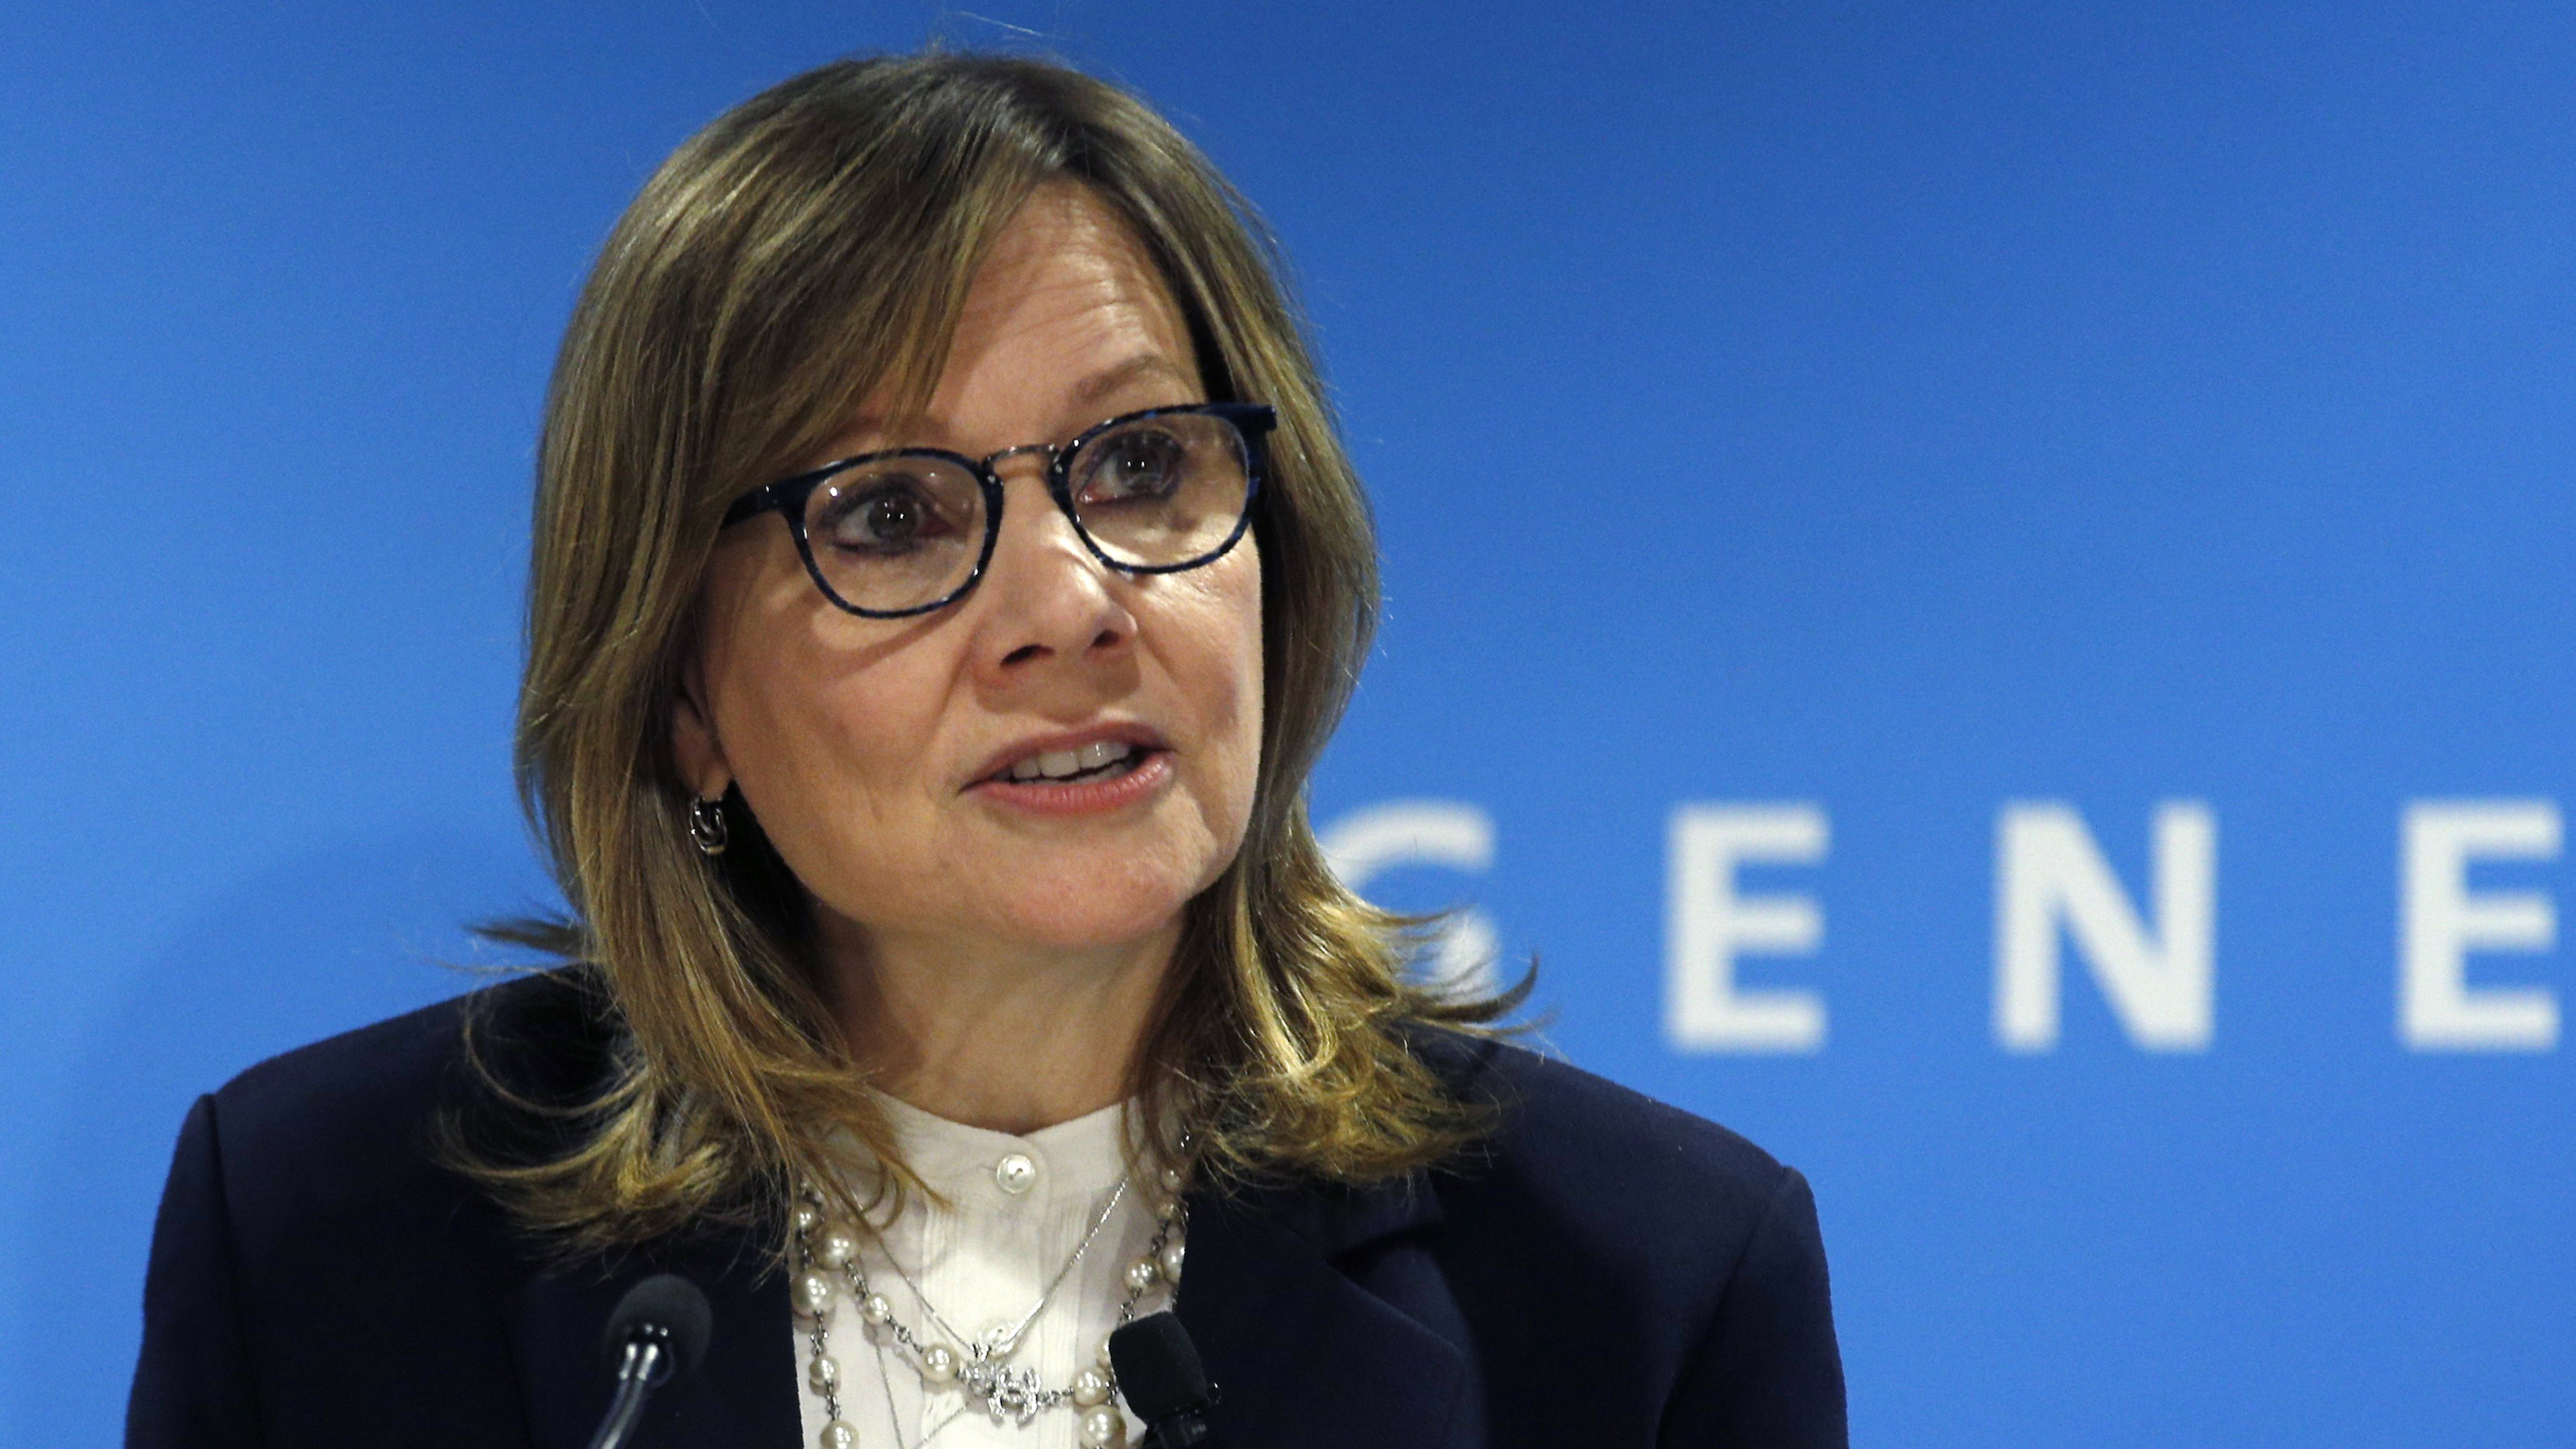 GM CEO Mary Barra on her three favorite questions to ask in